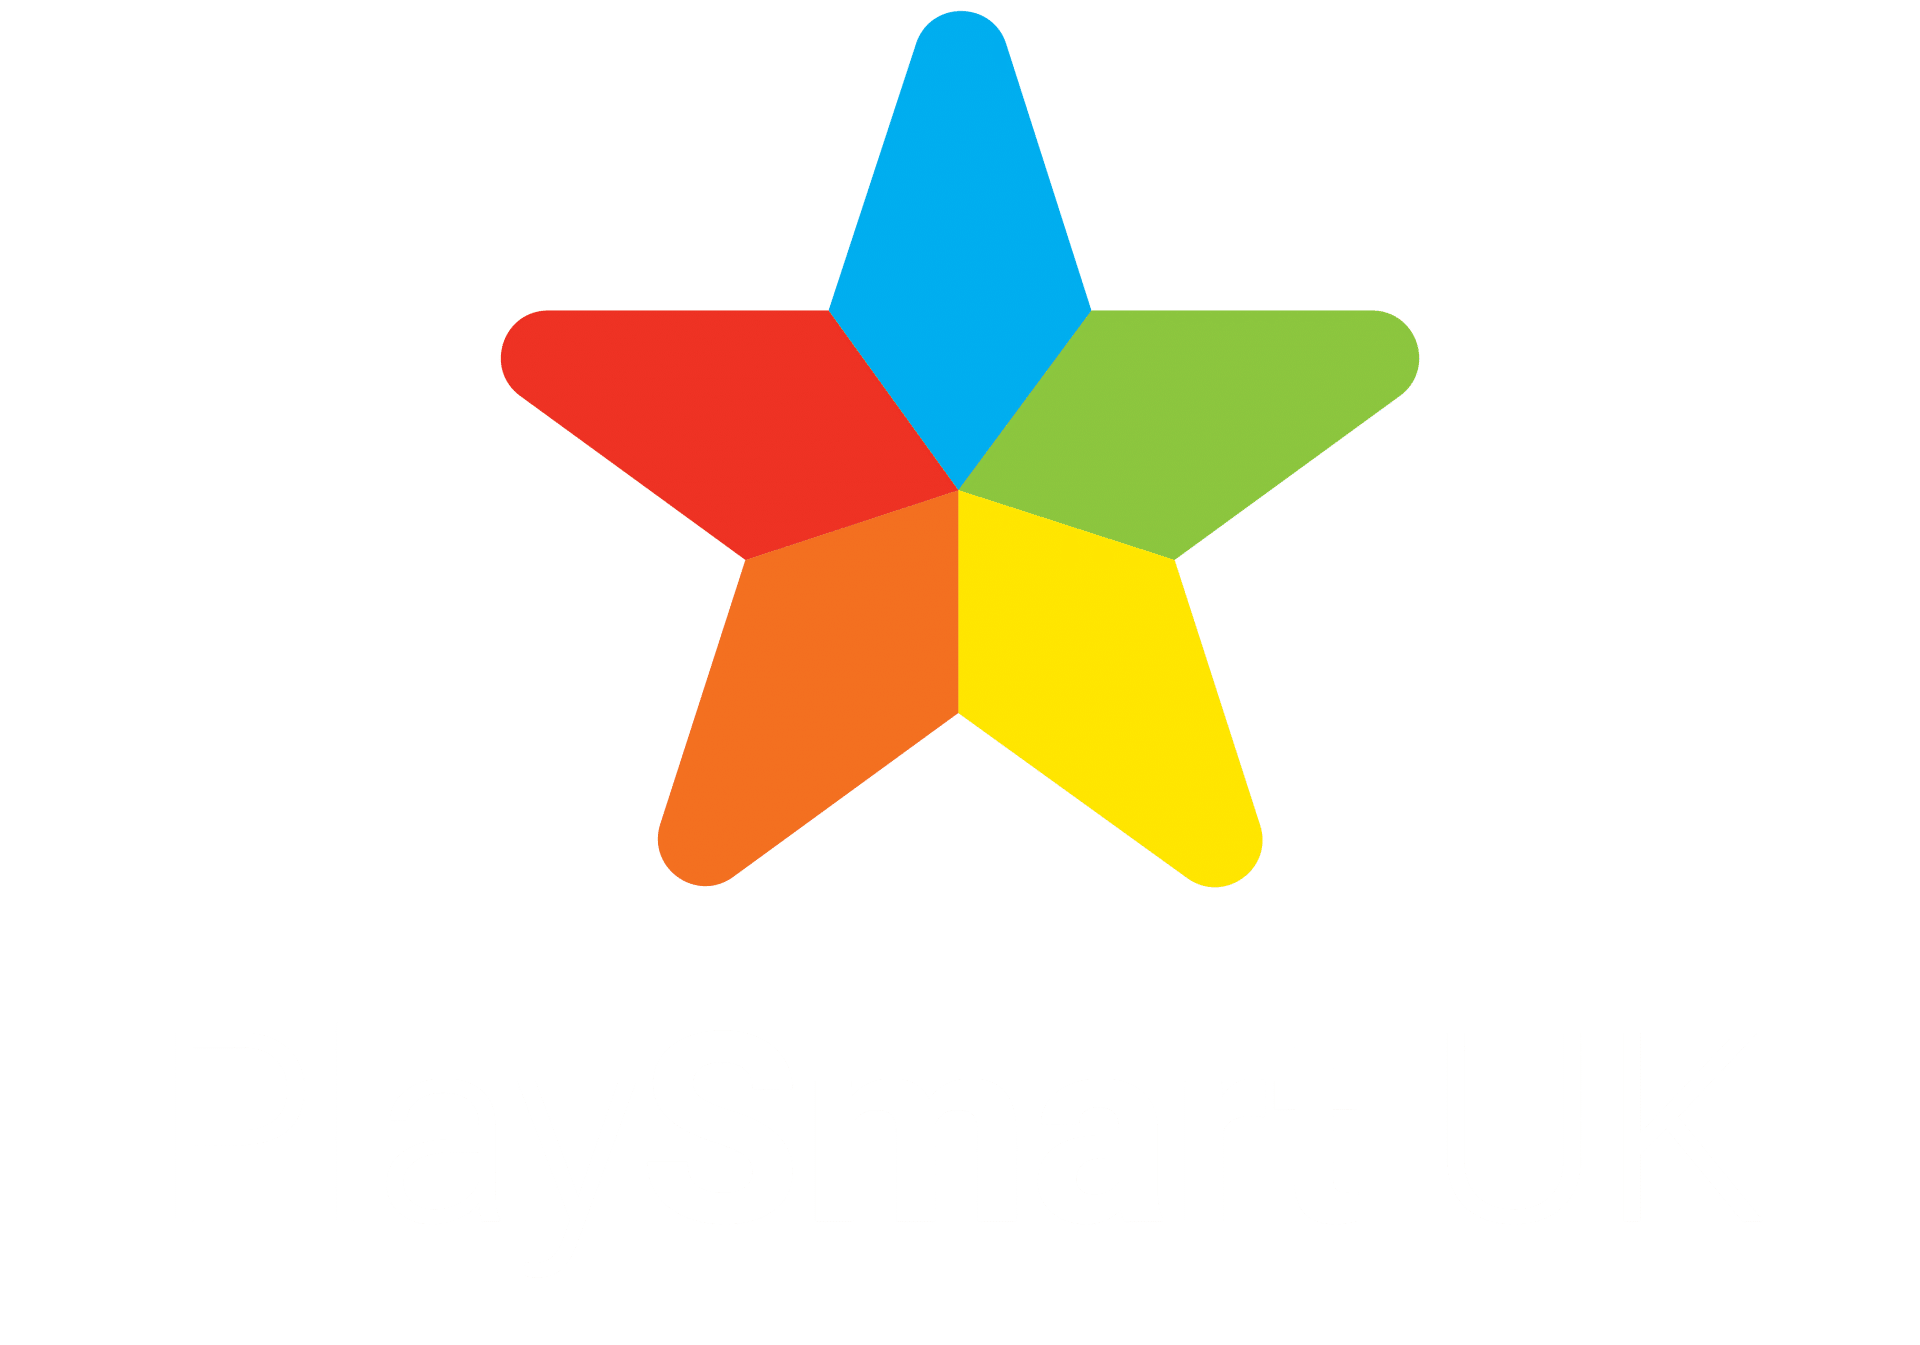 playsmart uk logo